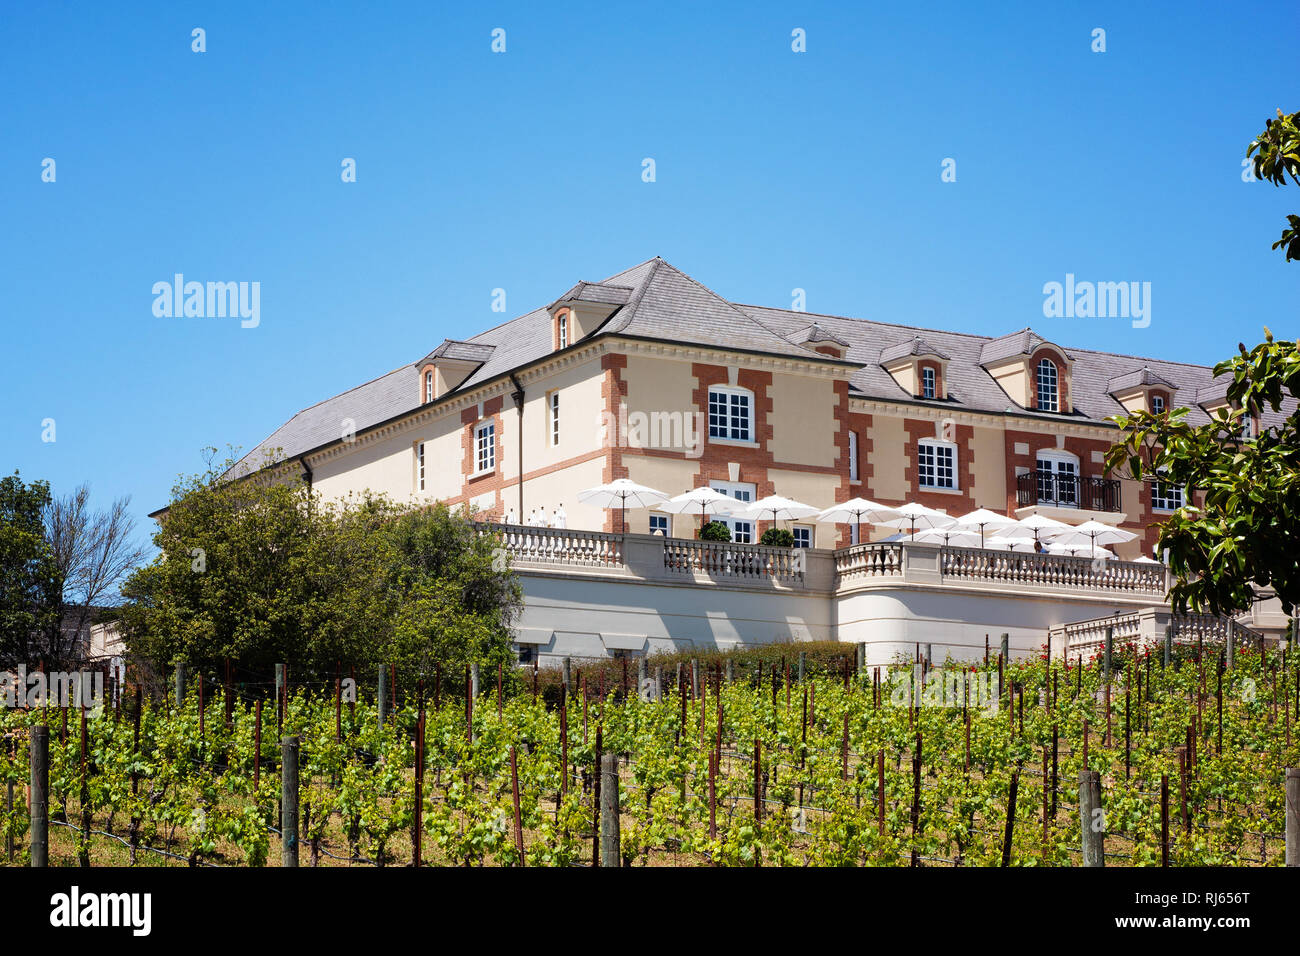 Domaine Carneros winery in Napa Valley, CA - Stock Image